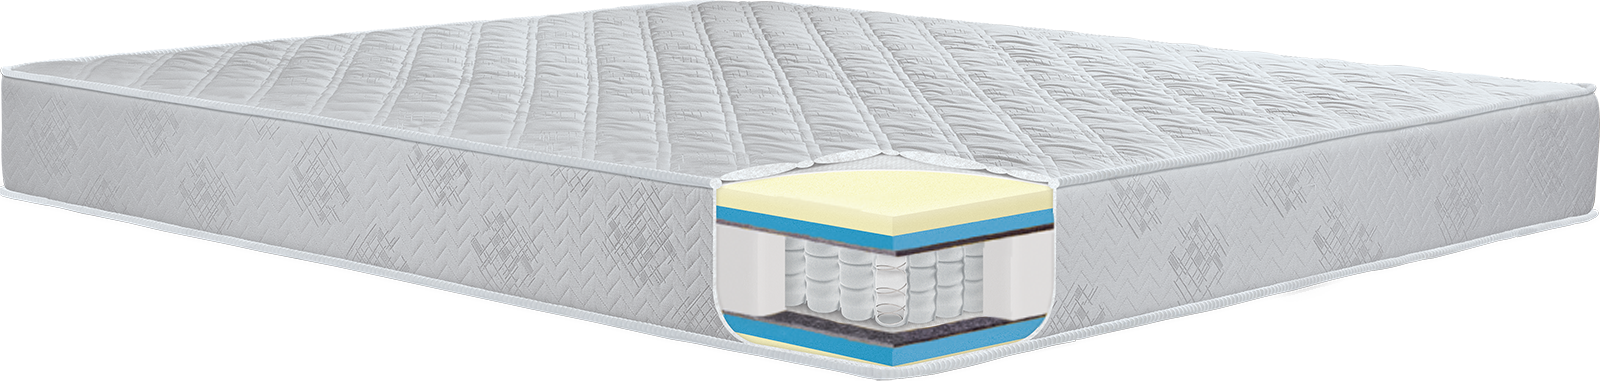 pocket springs boat mattress visco foam memory